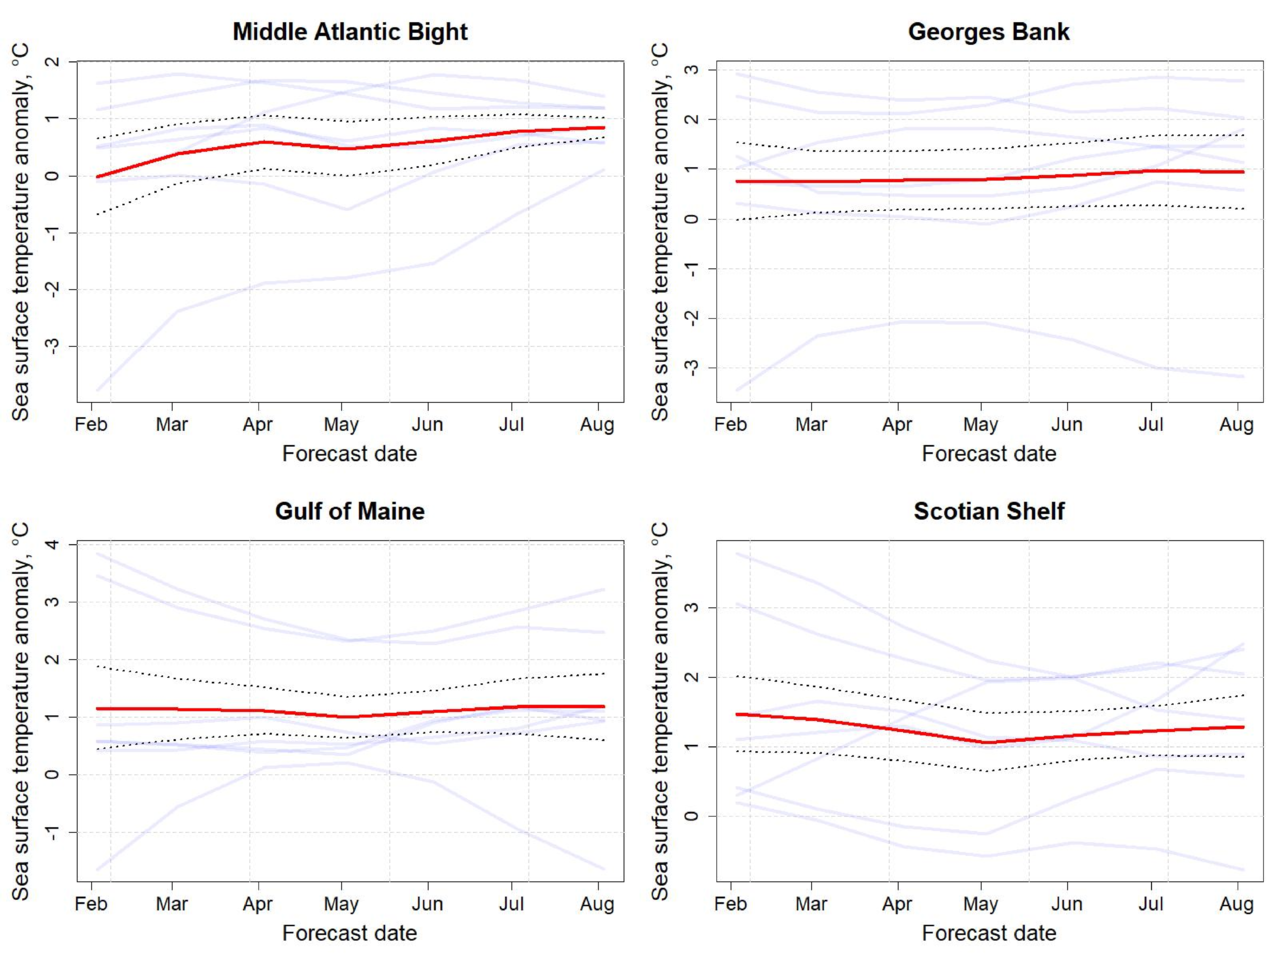 Graphs showing the ecosystem forecasts of sea temperature from February 2020 to August 2020. The forecasts suggest that the Northern ecoregions will have above average sea surface temperatures, while the Middle Atlantic Bight will progressively experience less elevated temperatures.